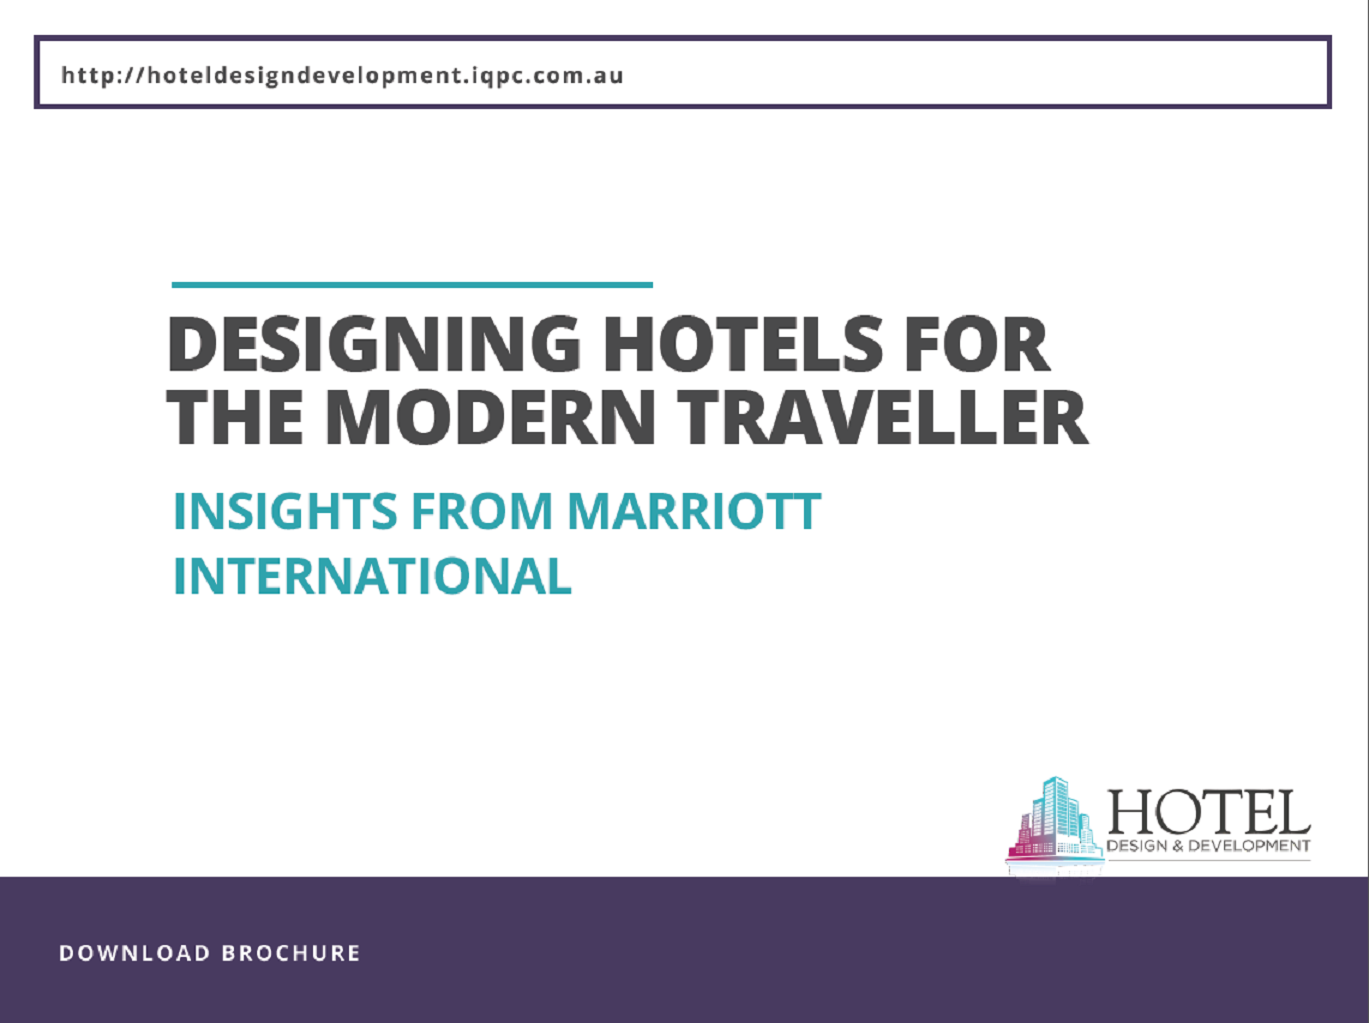 Designing Hotels for the Modern Traveler: Insights from Marriott International